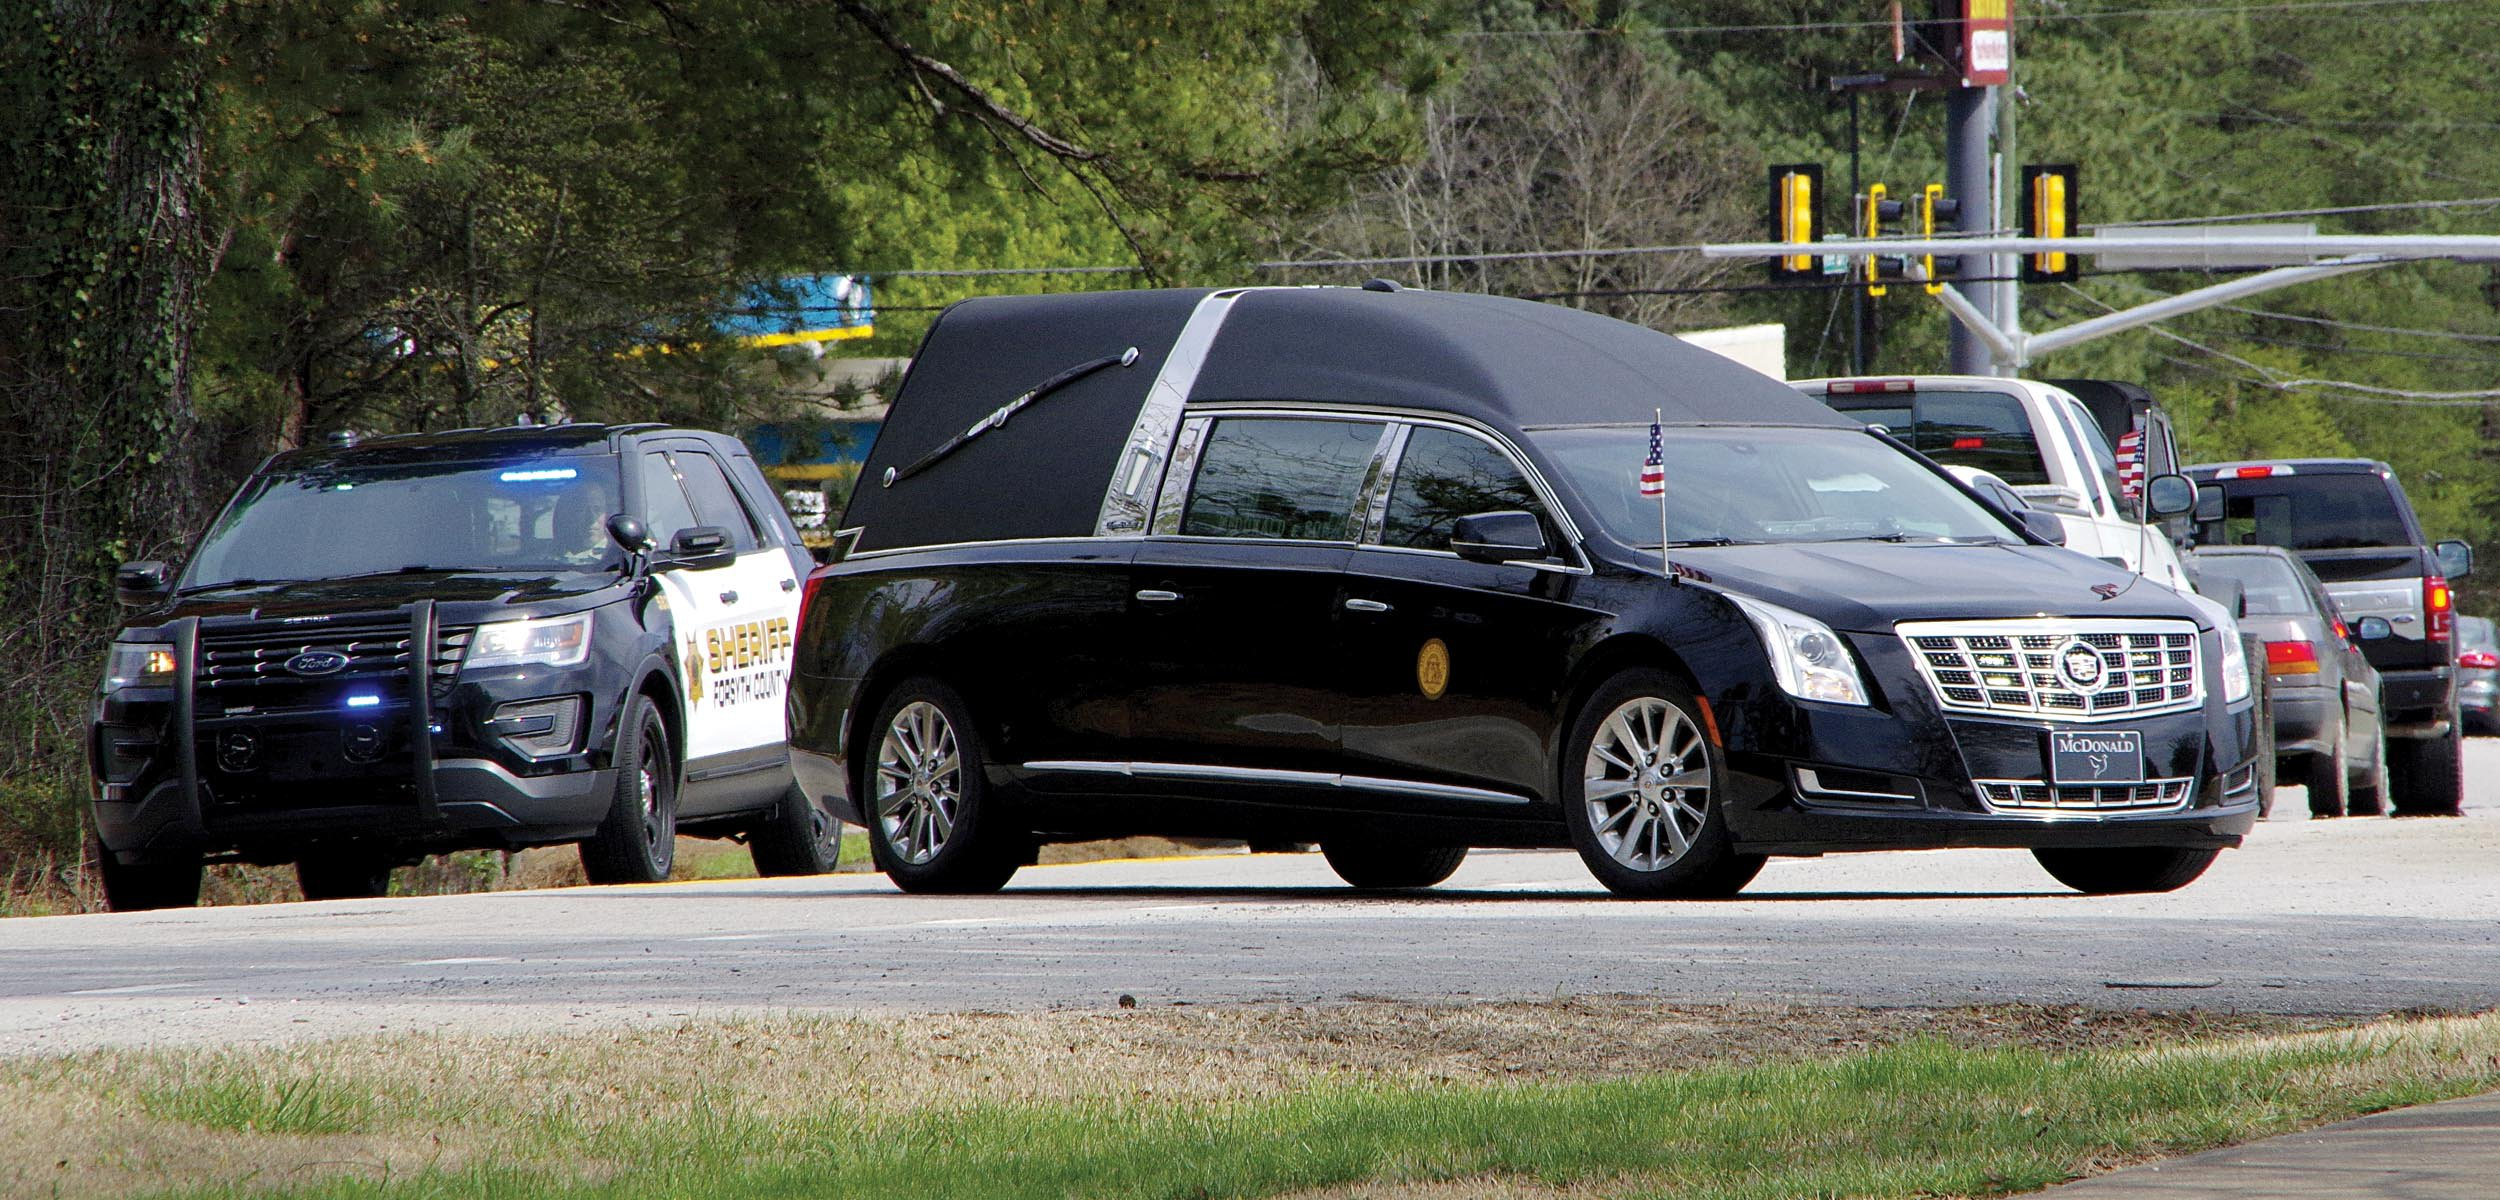 Hearse arrives